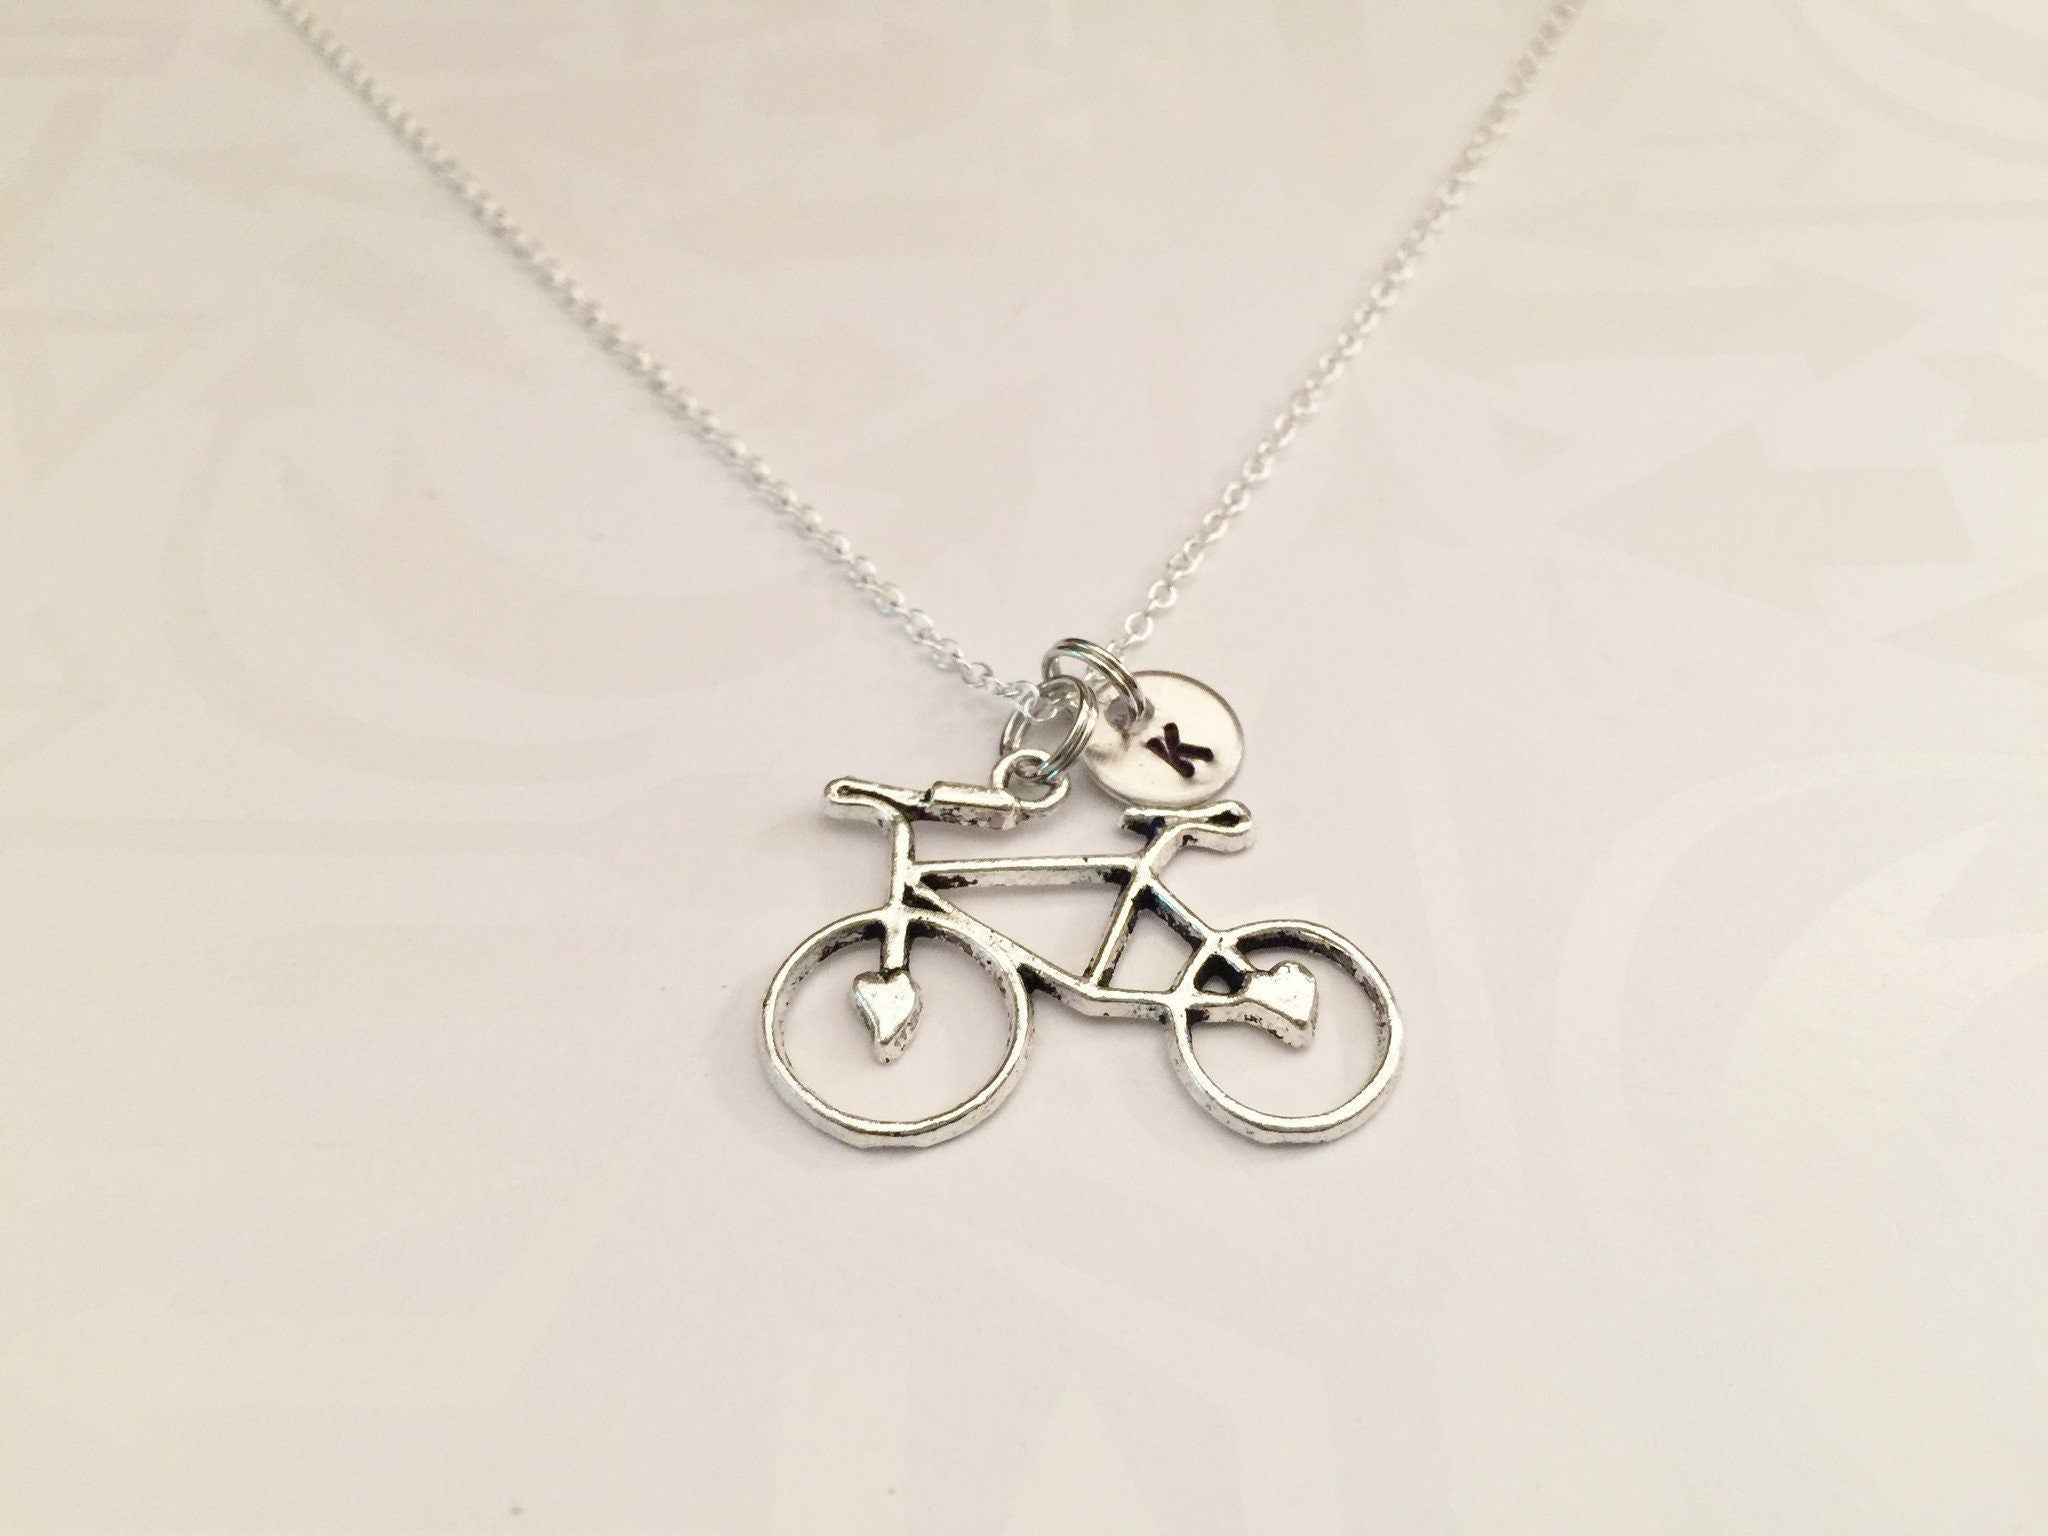 Bicycle Necklace with Initial - Anomaly Creations & Designs